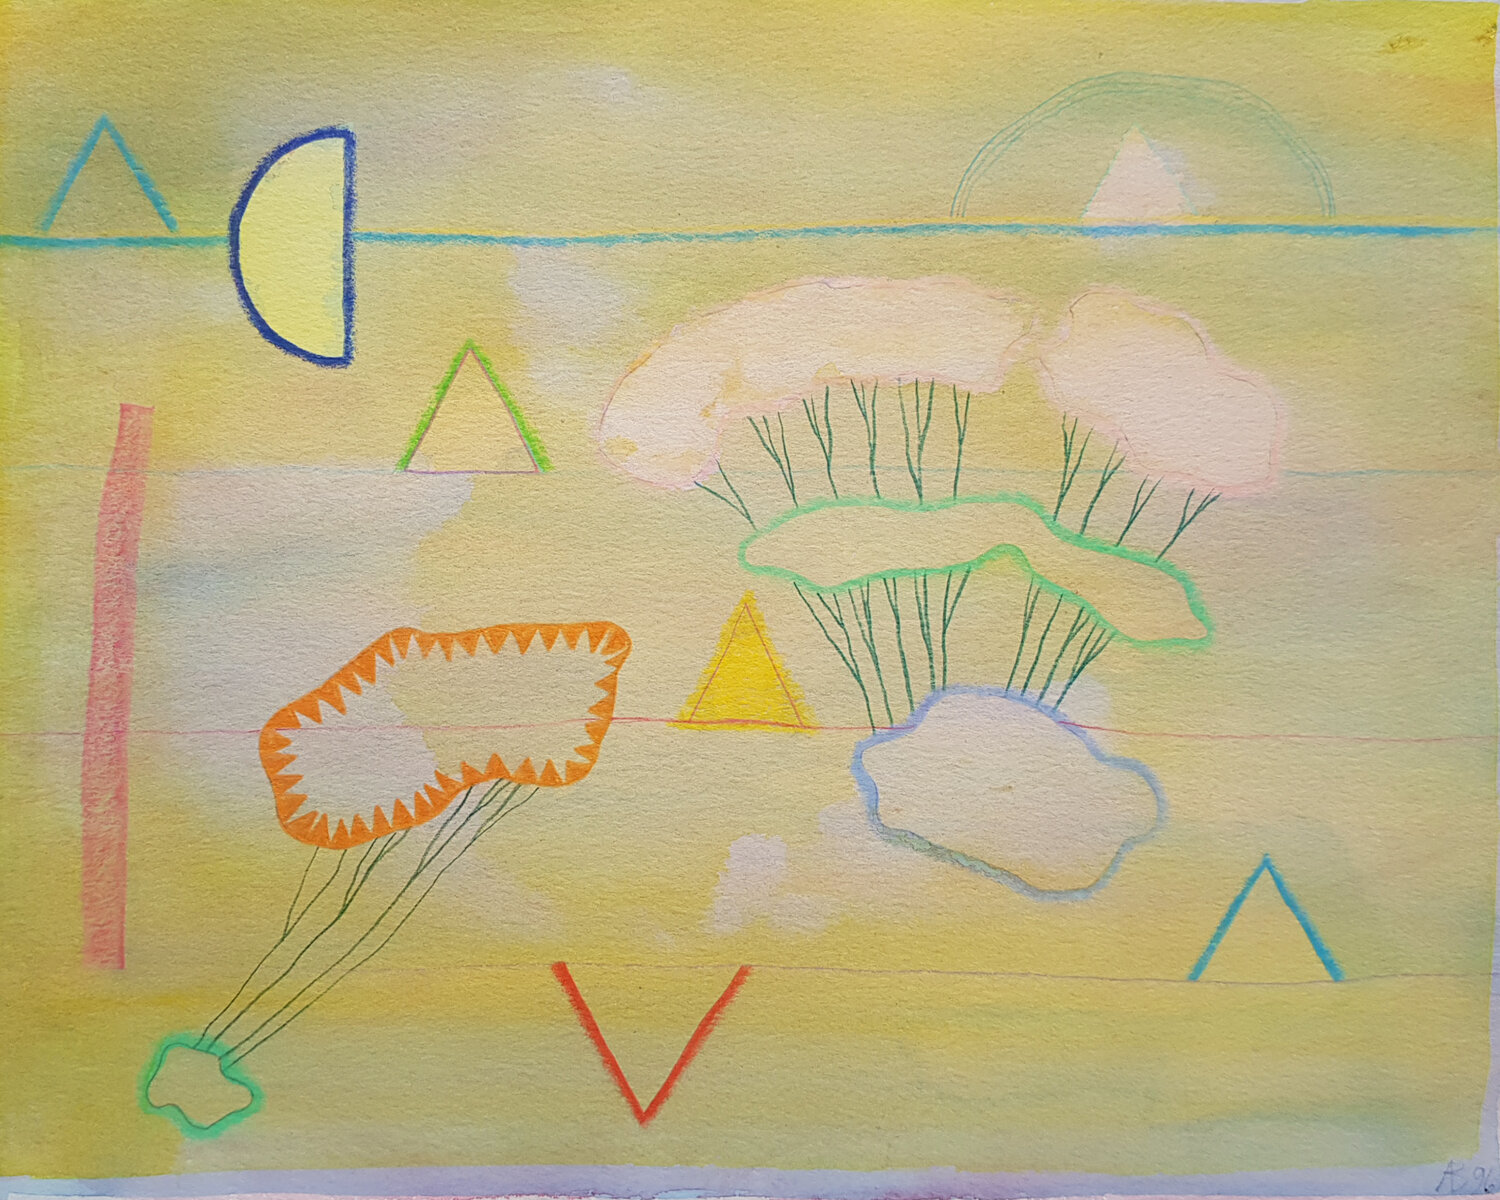 Anthony Benjamin,     Untitled (Yellow Clouds),  Watercolour on paper, 1996, 25.4 x 31.75cm